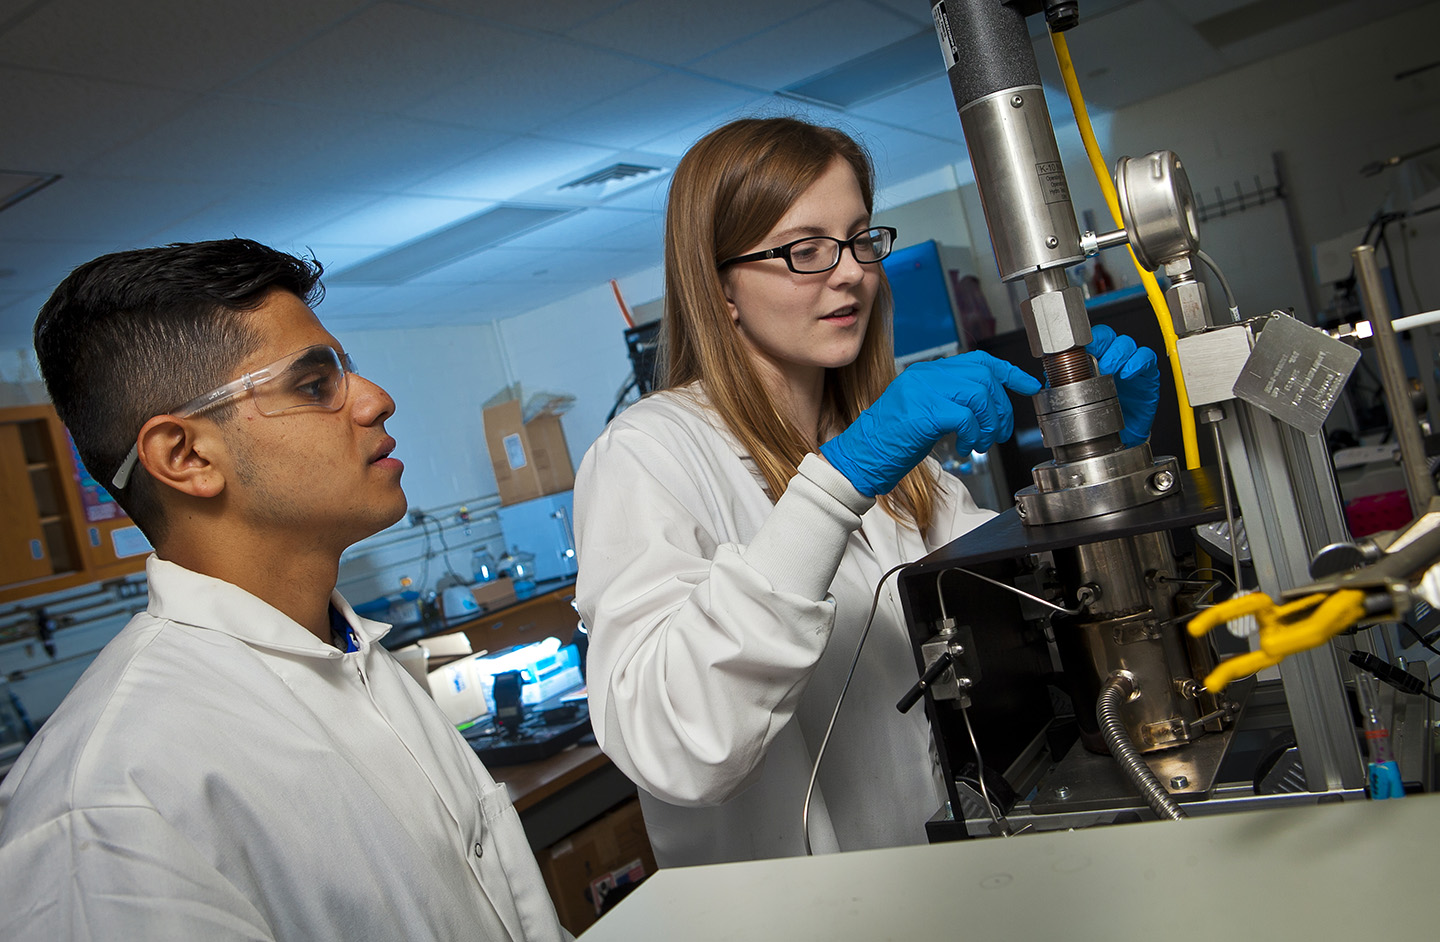 Luce Scholar Eddalee Hochwalt Naumann '19 and Praphulla Pokharel '19 work on the supercritical CO2 reactor.